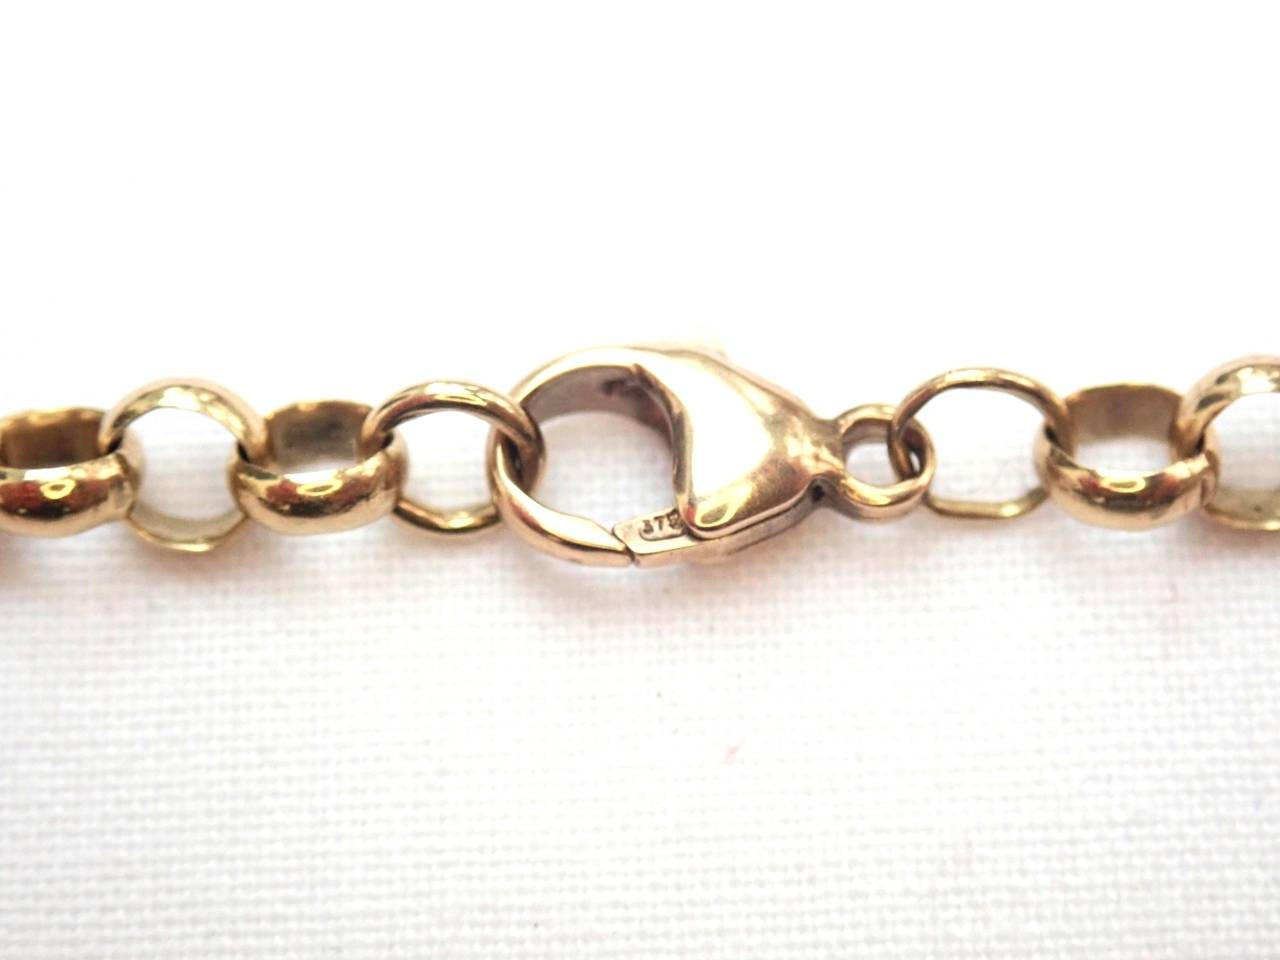 AA000981 - 9ct Yellow Gold Belcher Rolo chain 16.3gms 19 Inch #052